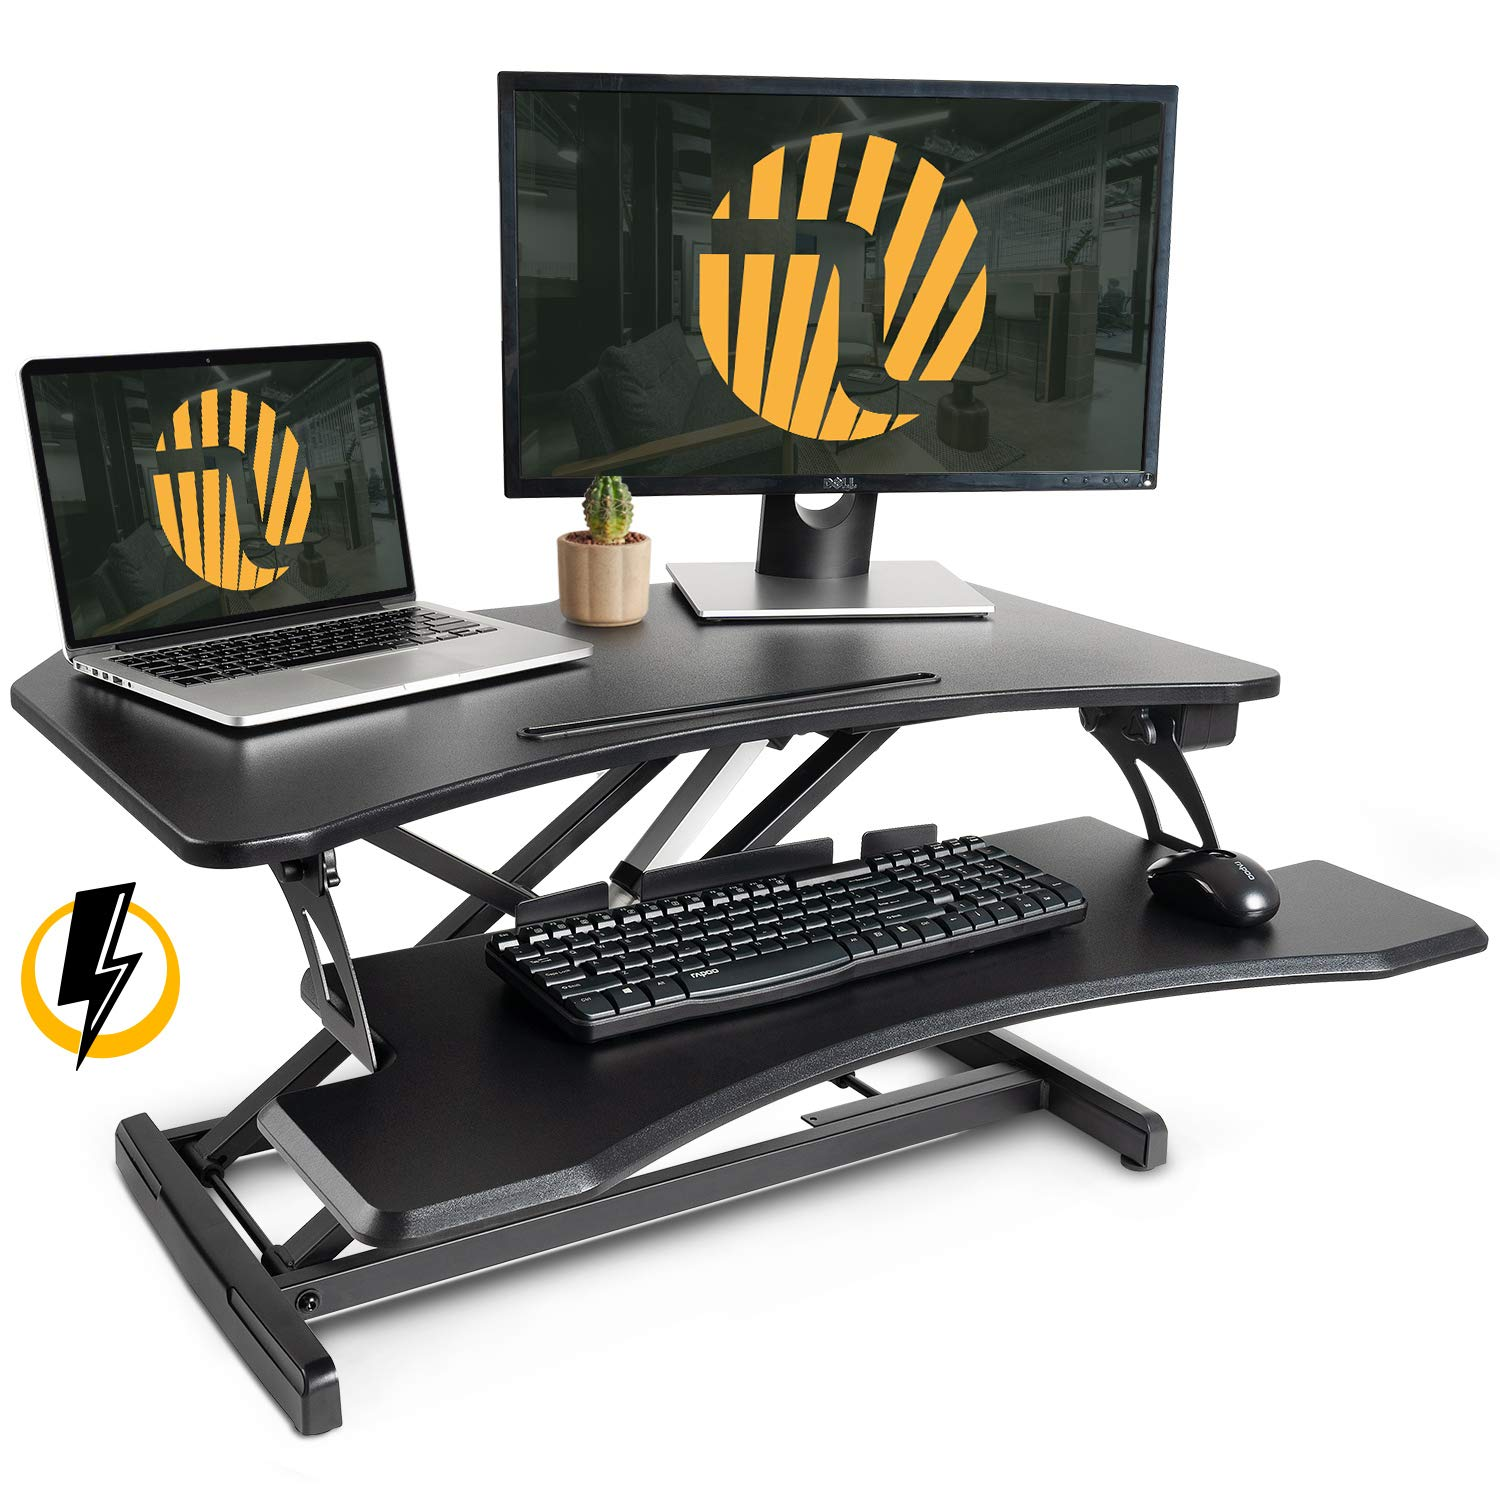 FEZIBO Electric Standing Desk Converter 34 inch Black Height Adjustable Stand Up Power Riser, Tabletop Workstation Fits Dual Monitor